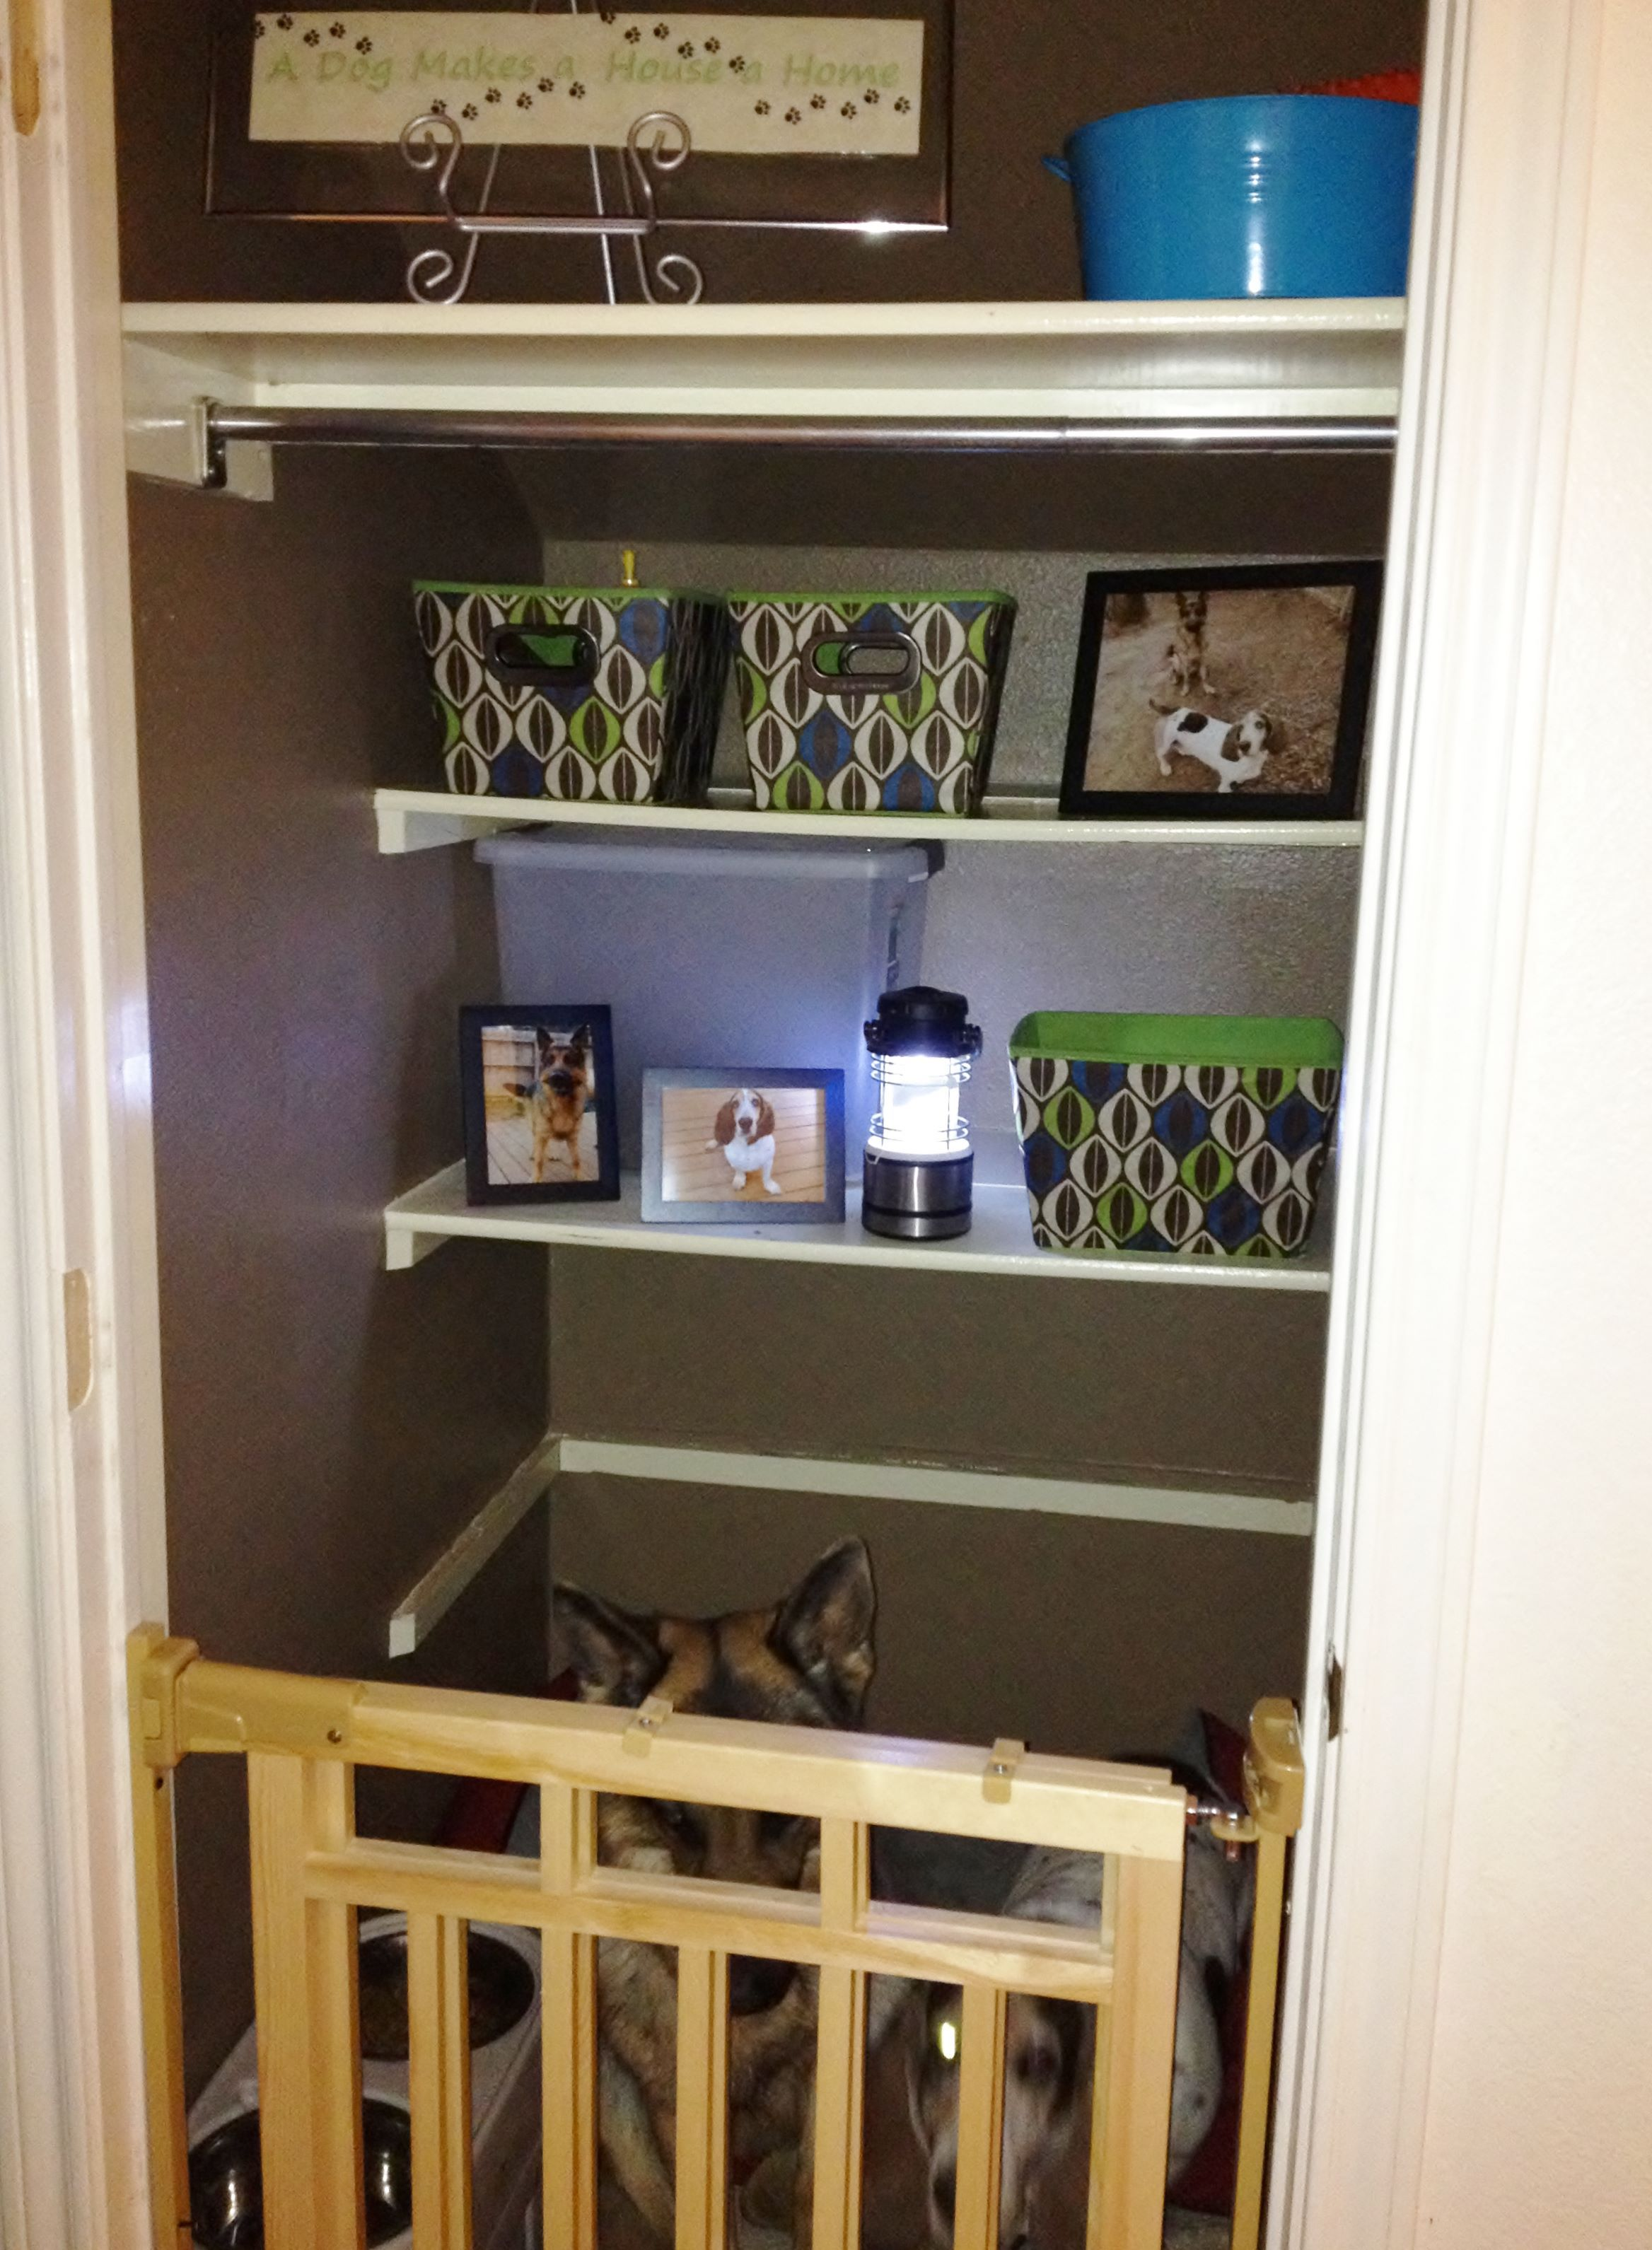 Dog Room Ideas Making A Closet Into A Dog Room  For Home  Pinterest  Dog Rooms